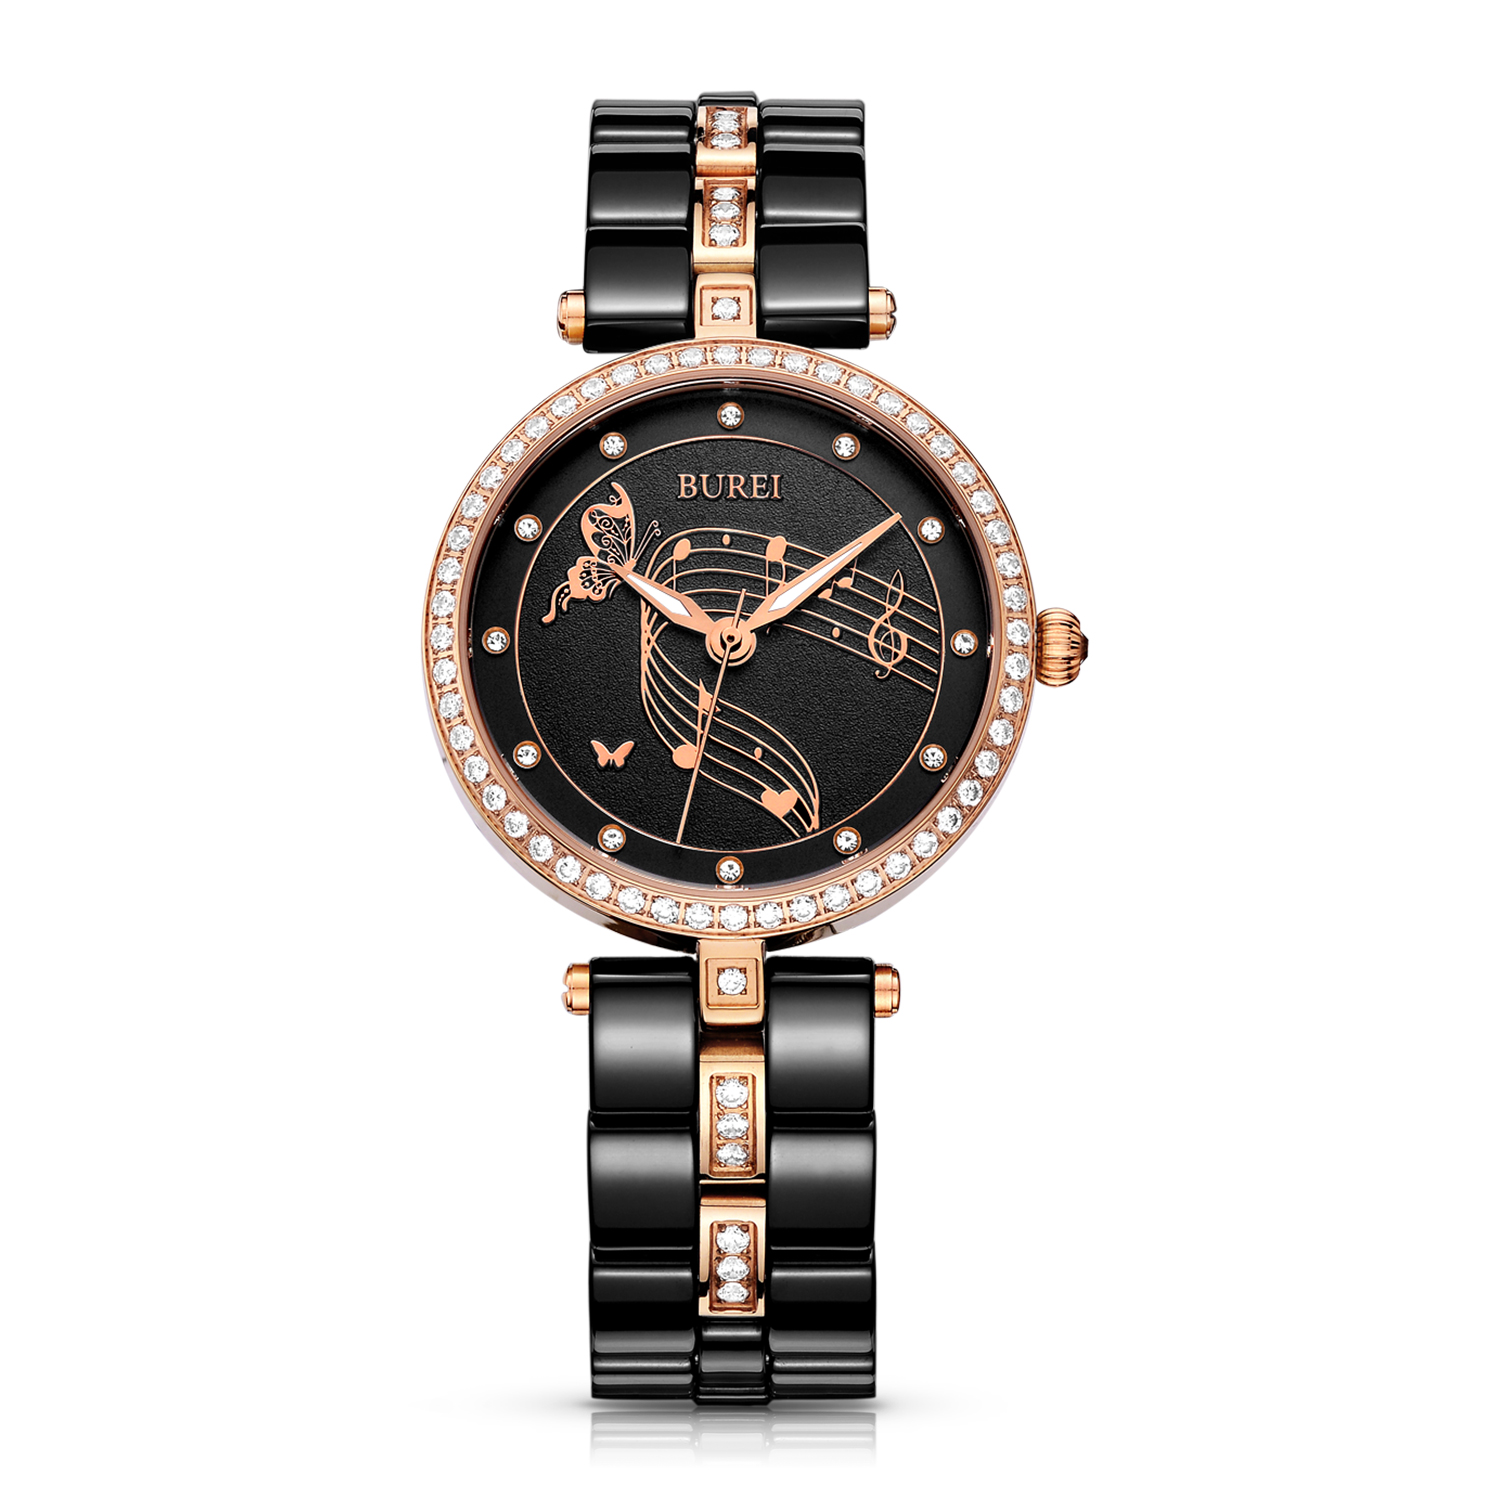 BUREI 3029 Switzerland watch Women Dress Watches with Swarovski Crystal-Accented Black Ceramic and Rose Gold-Tone vince camuto women s vc 5186chgb swarovski crystal accented gold tone multi function bracelet watch